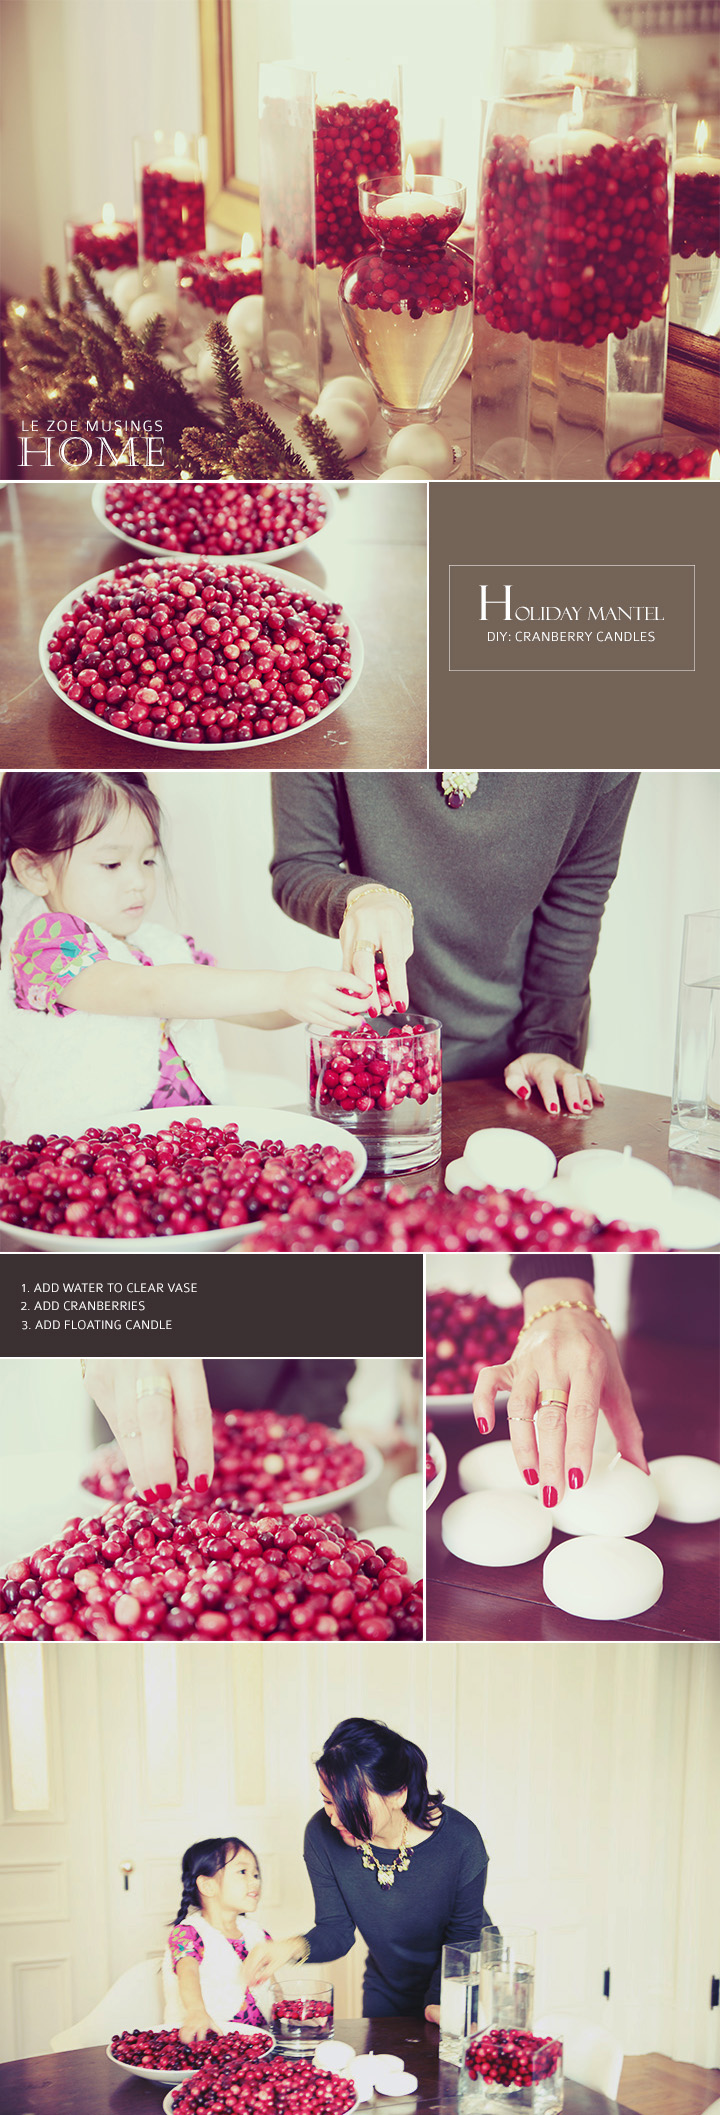 diy cranberry candles by le zoe musings 4